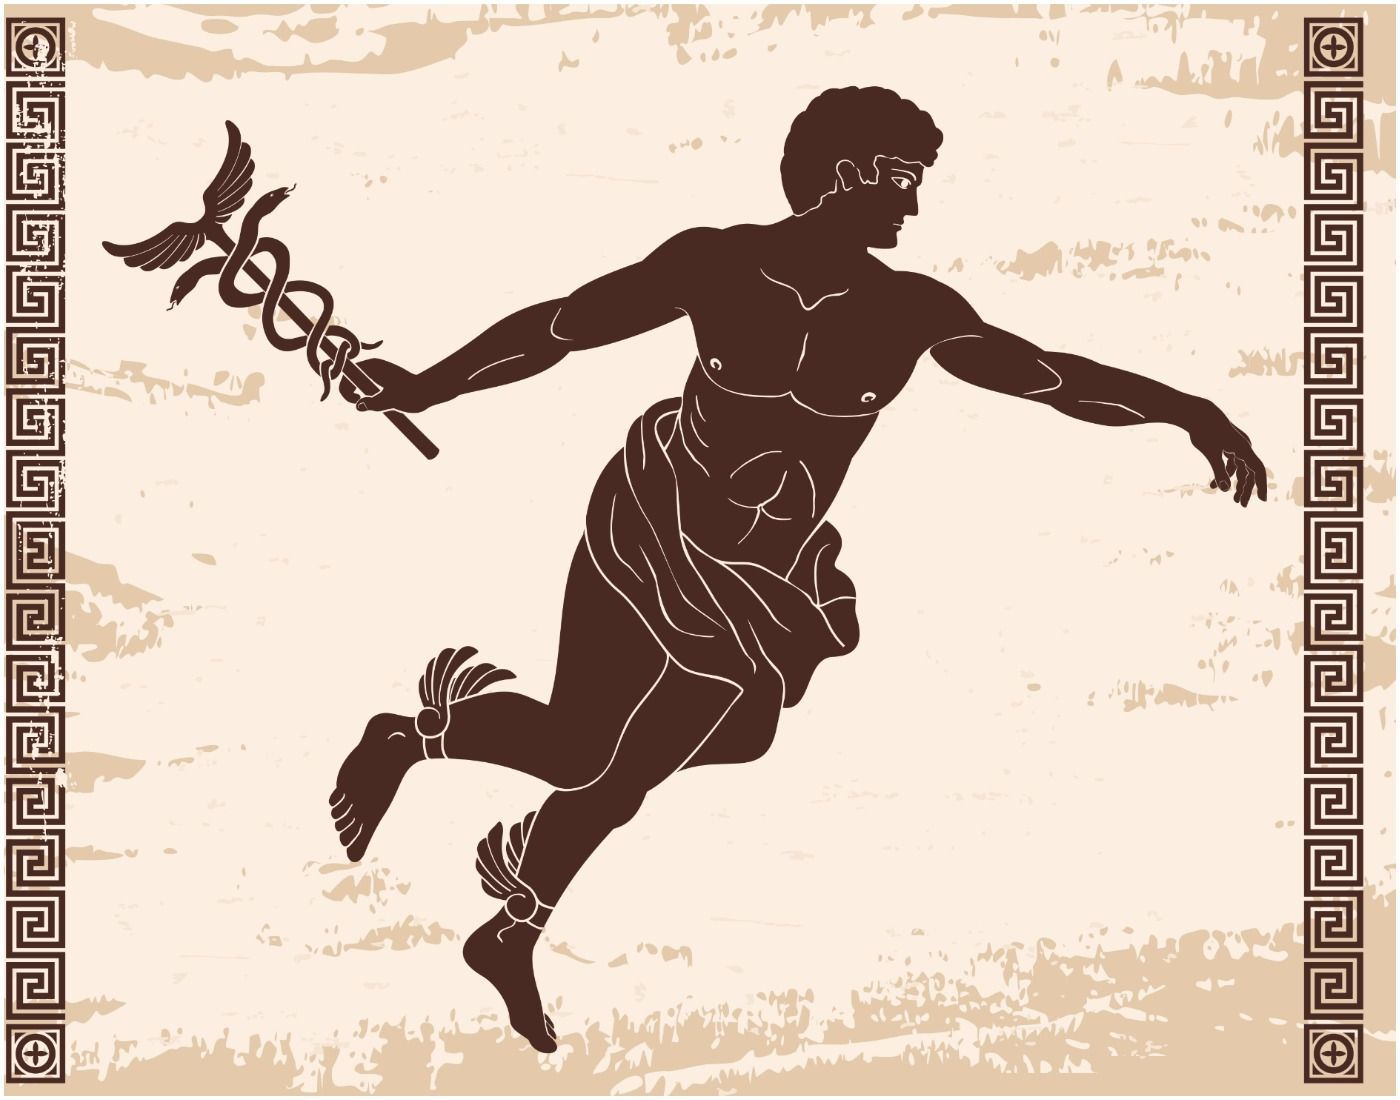 Interesting Facts About Hermes – The Greek Messenger God